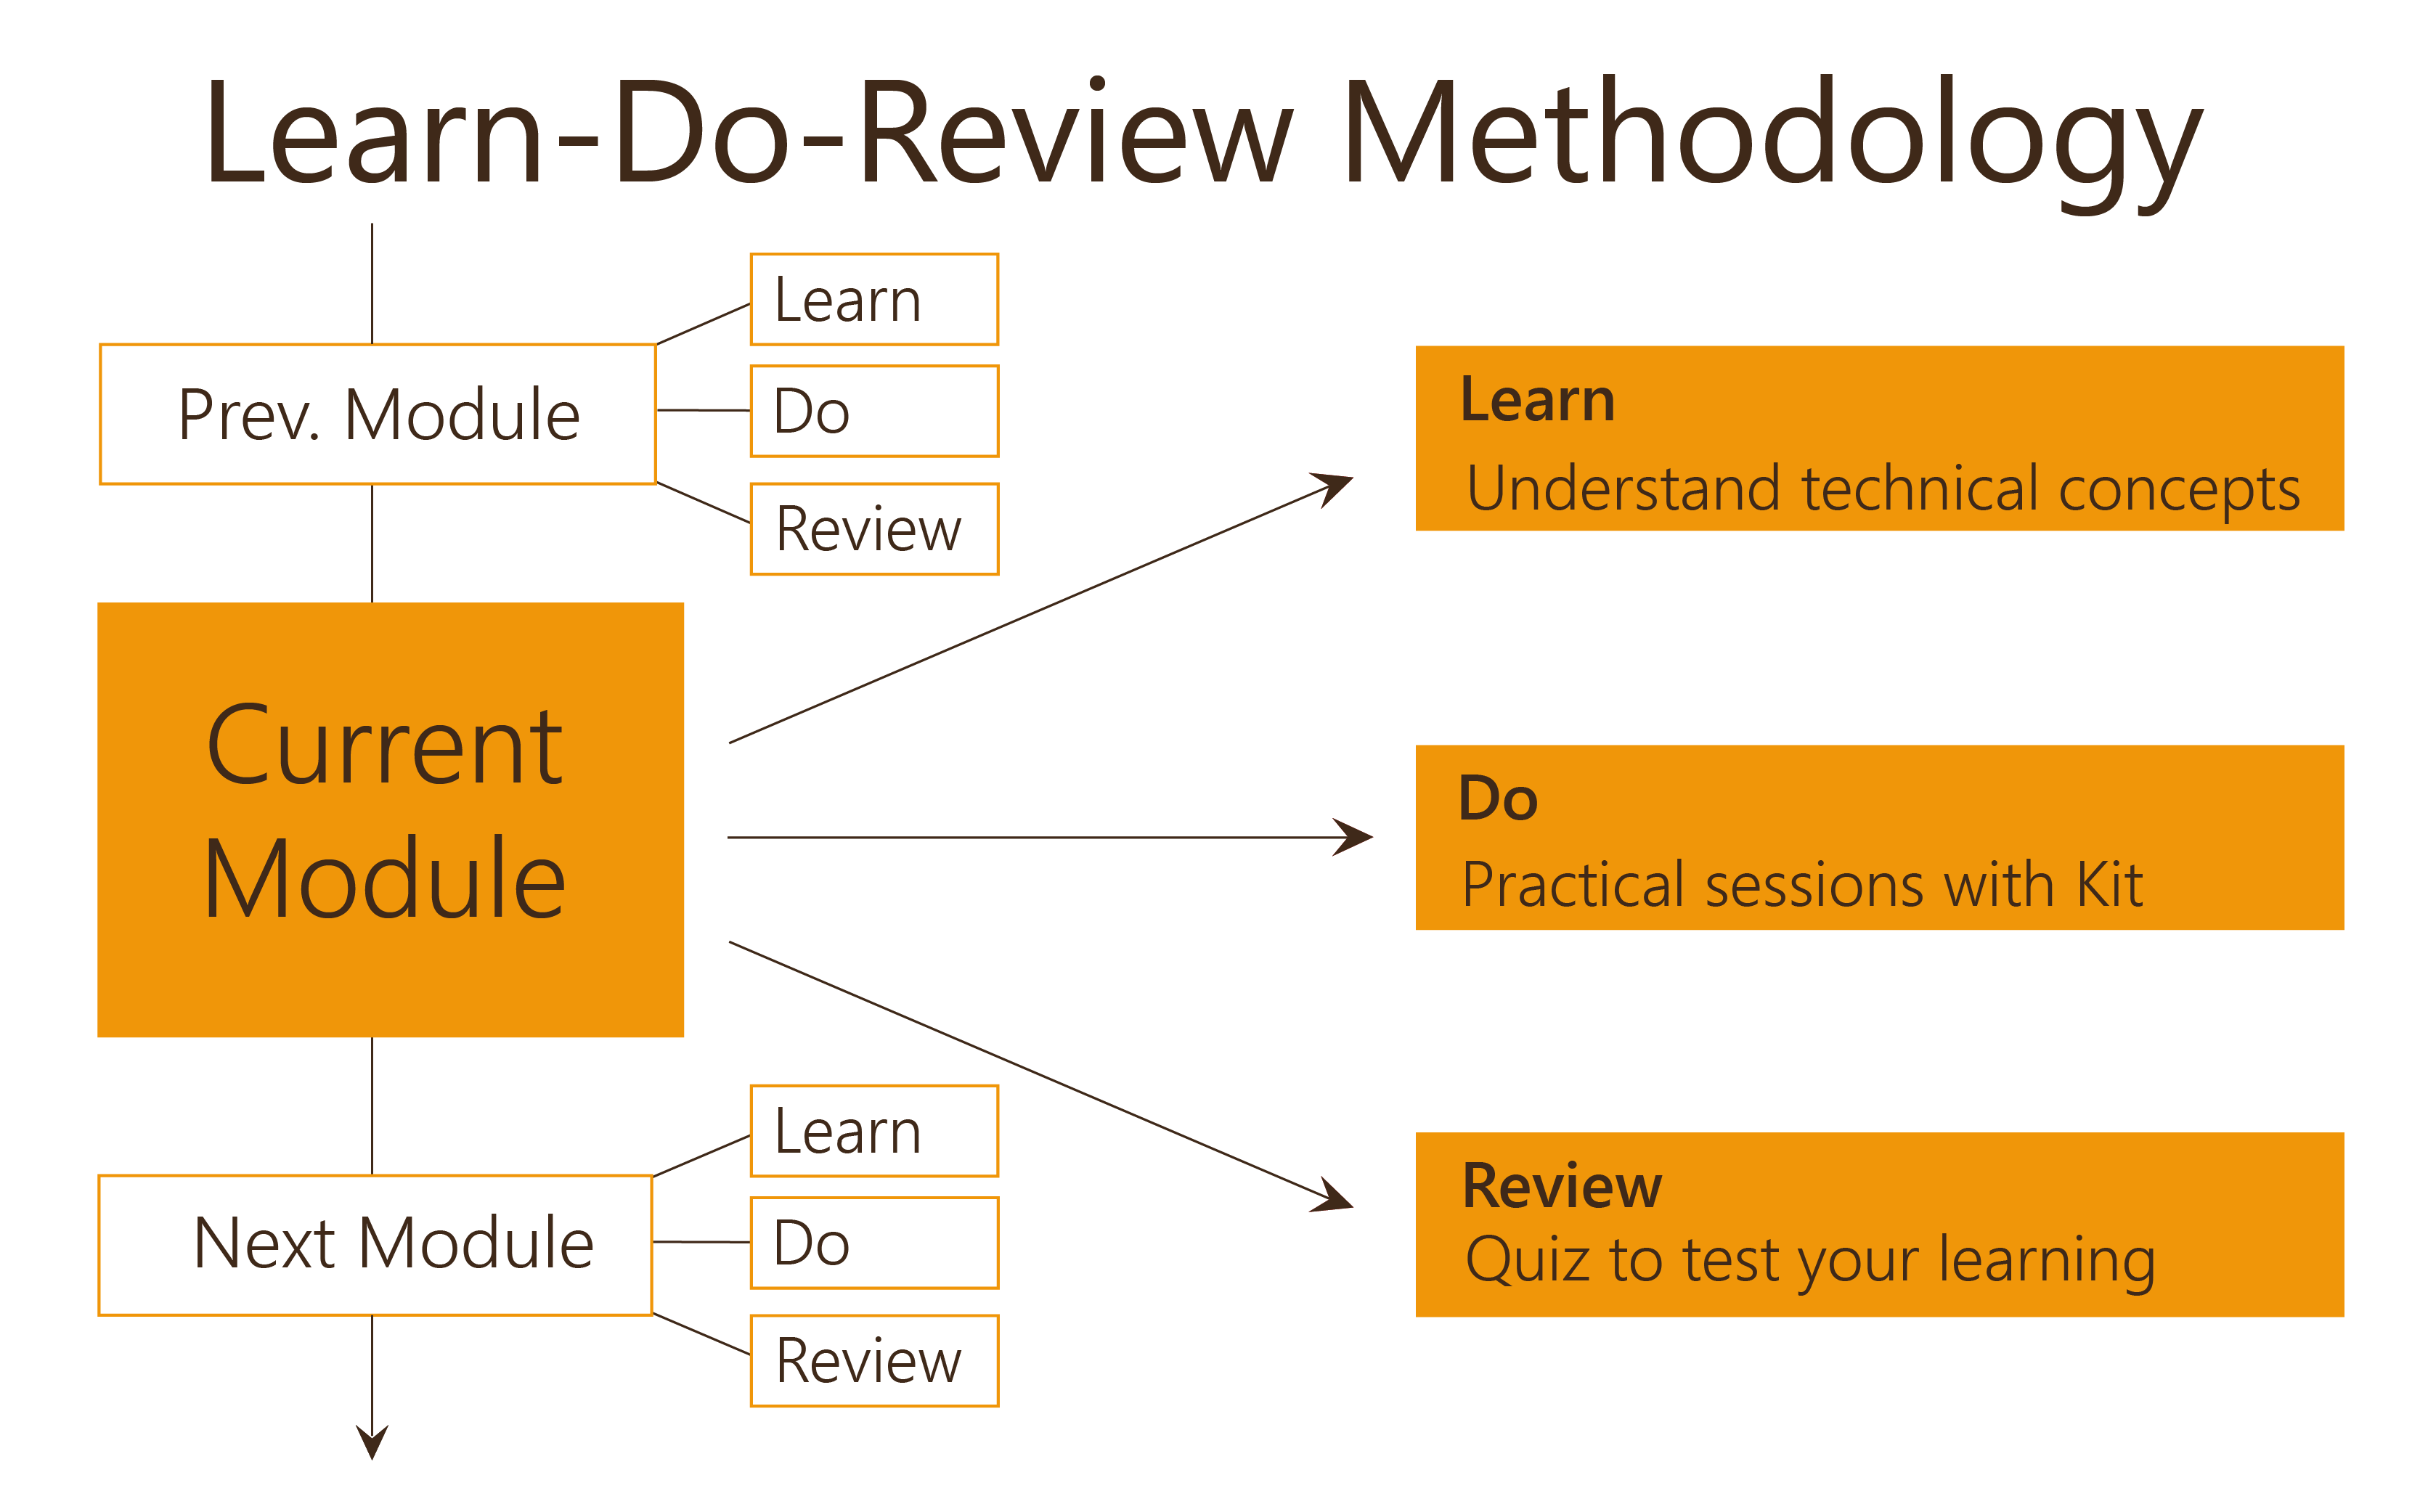 Learn Do Review Methodology